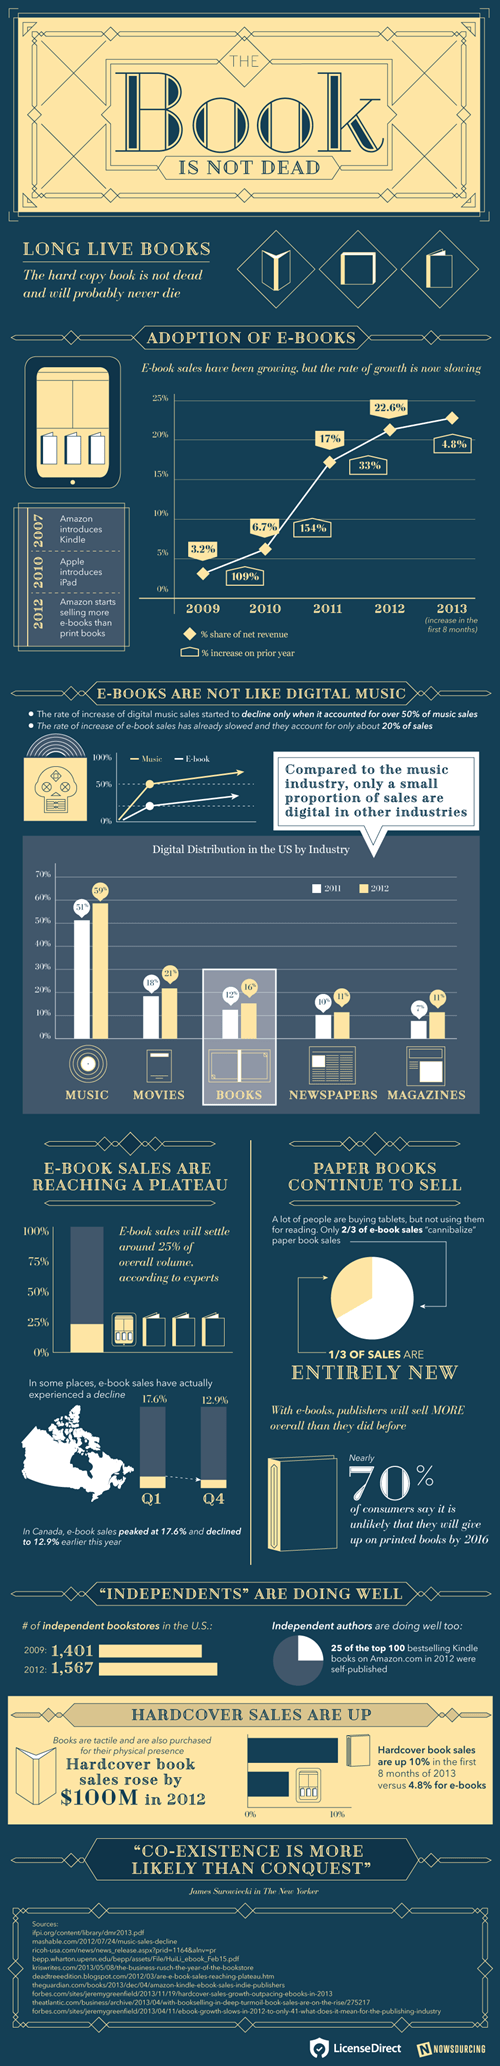 books infographic reading